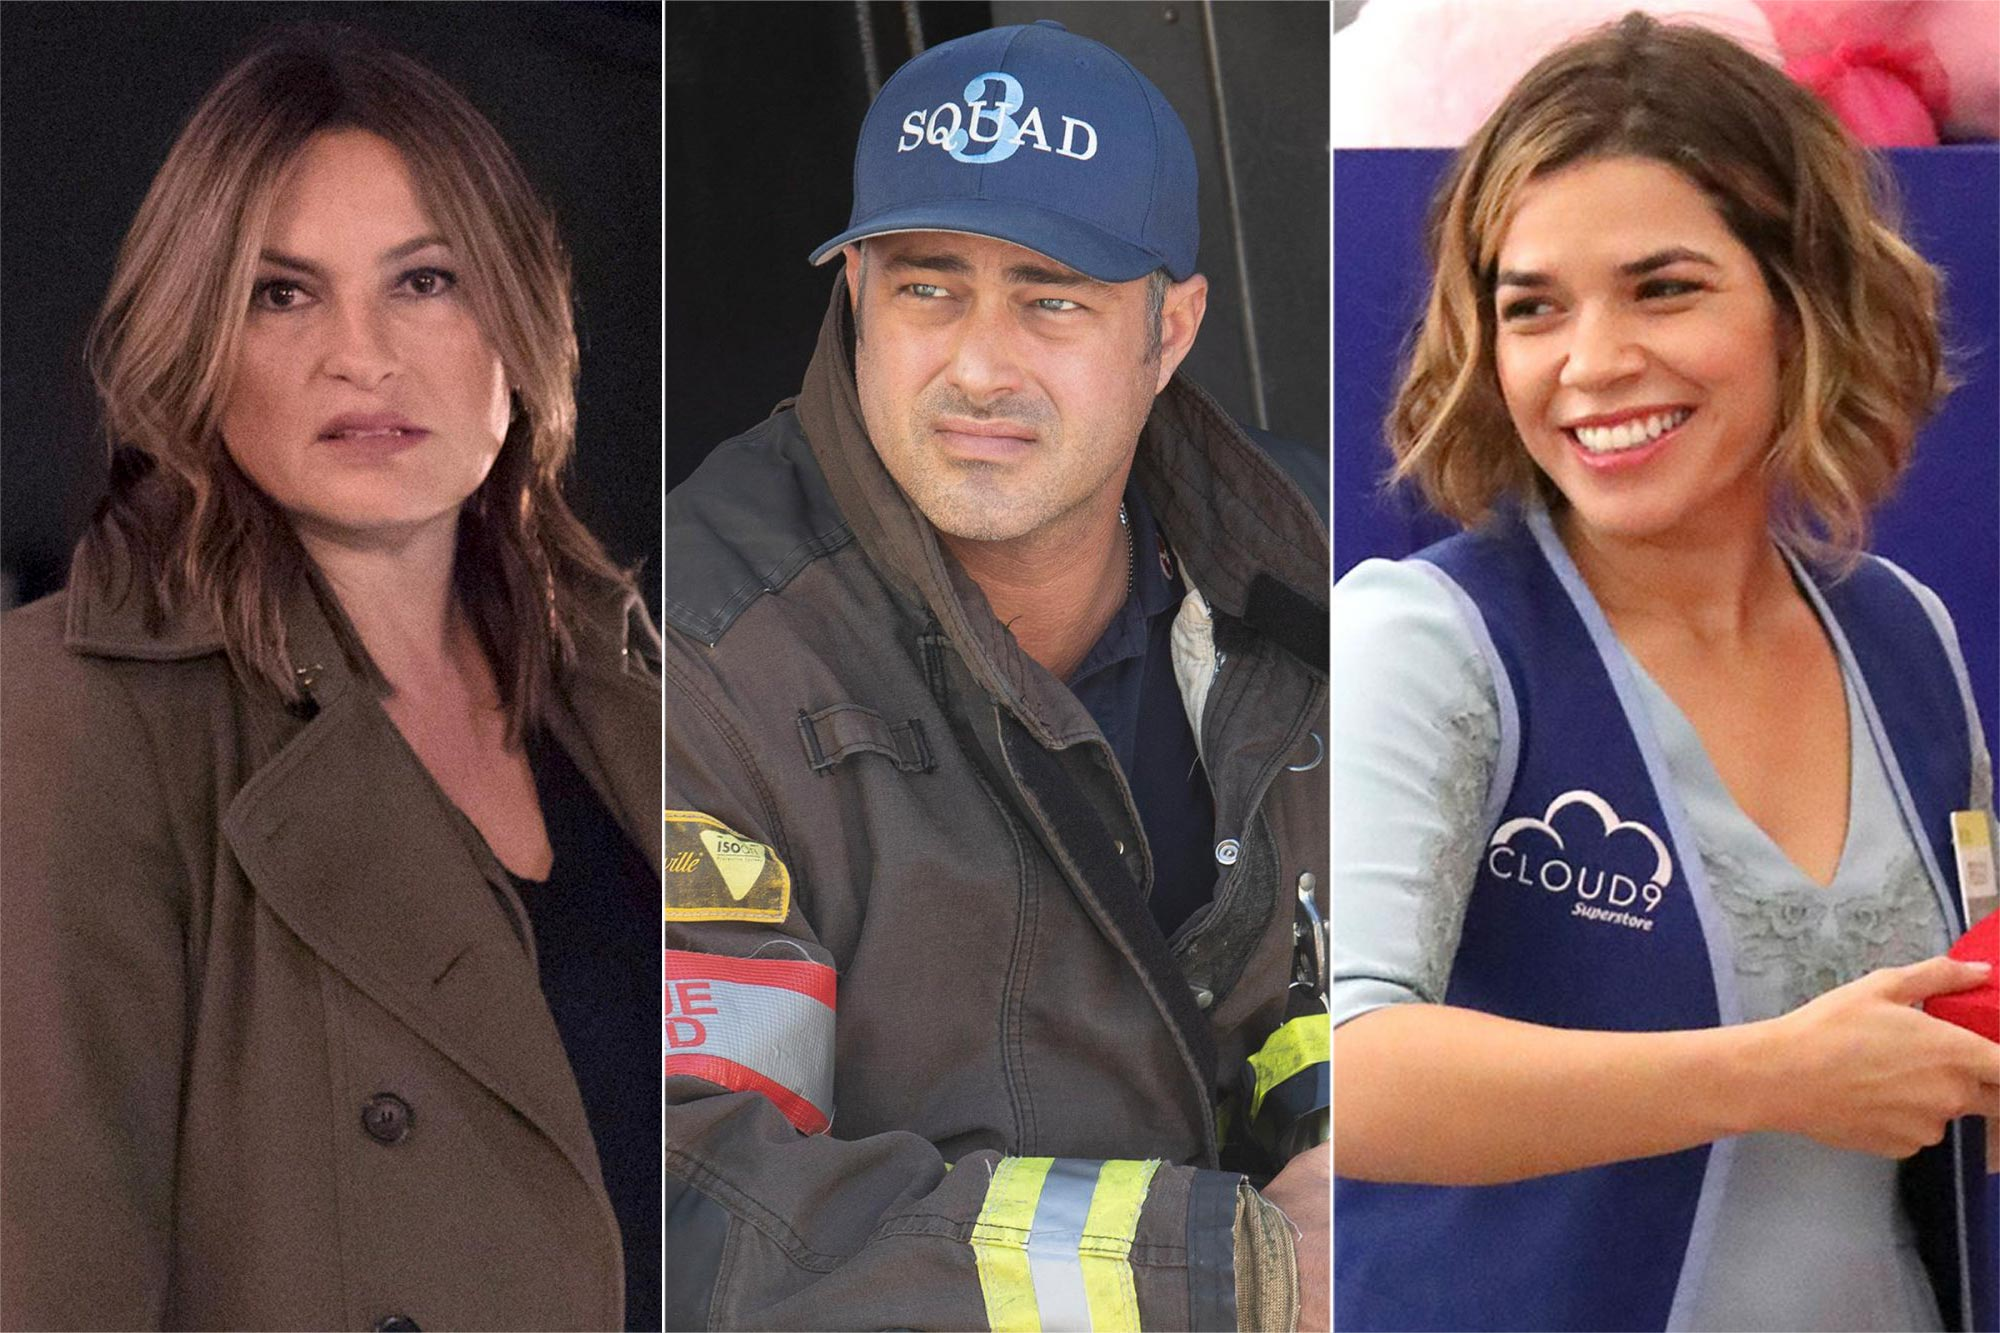 LAW & ORDER: SPECIAL VICTIMS UNIT; CHICAGO FIRE; Superstore